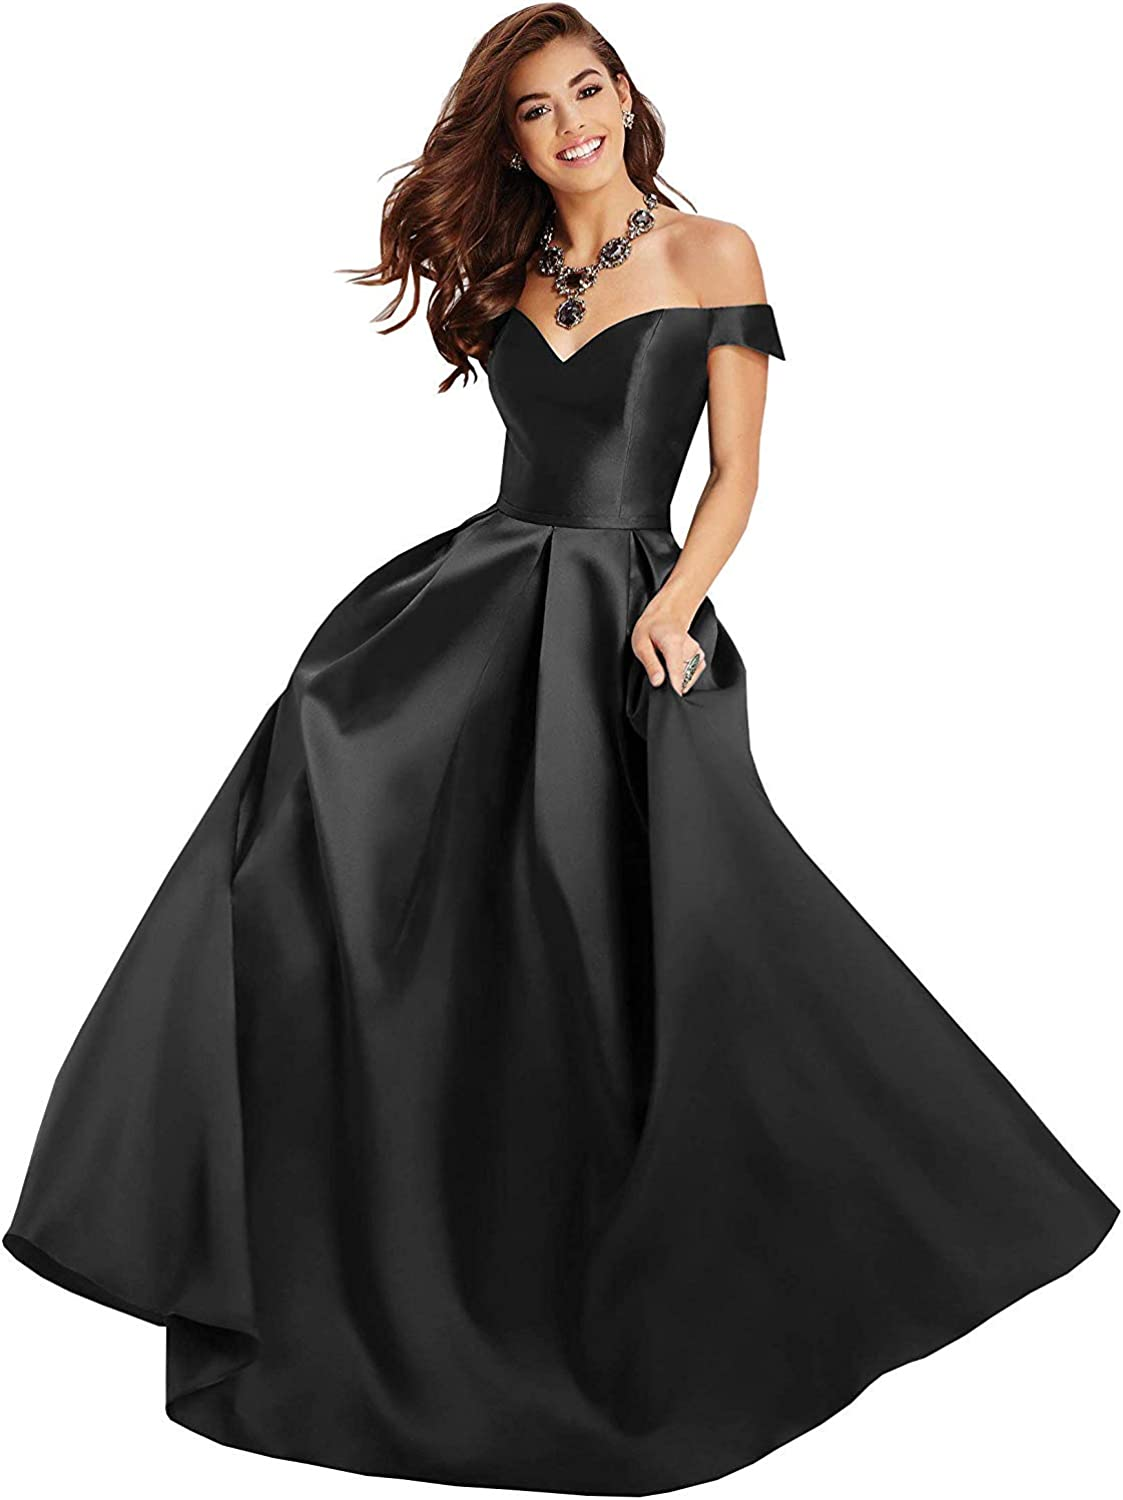 Clothfun Off Shoulder Prom Dresses Long 2021 Formal Dresses for Women Evening Gowns Satin A-Line with Pockets